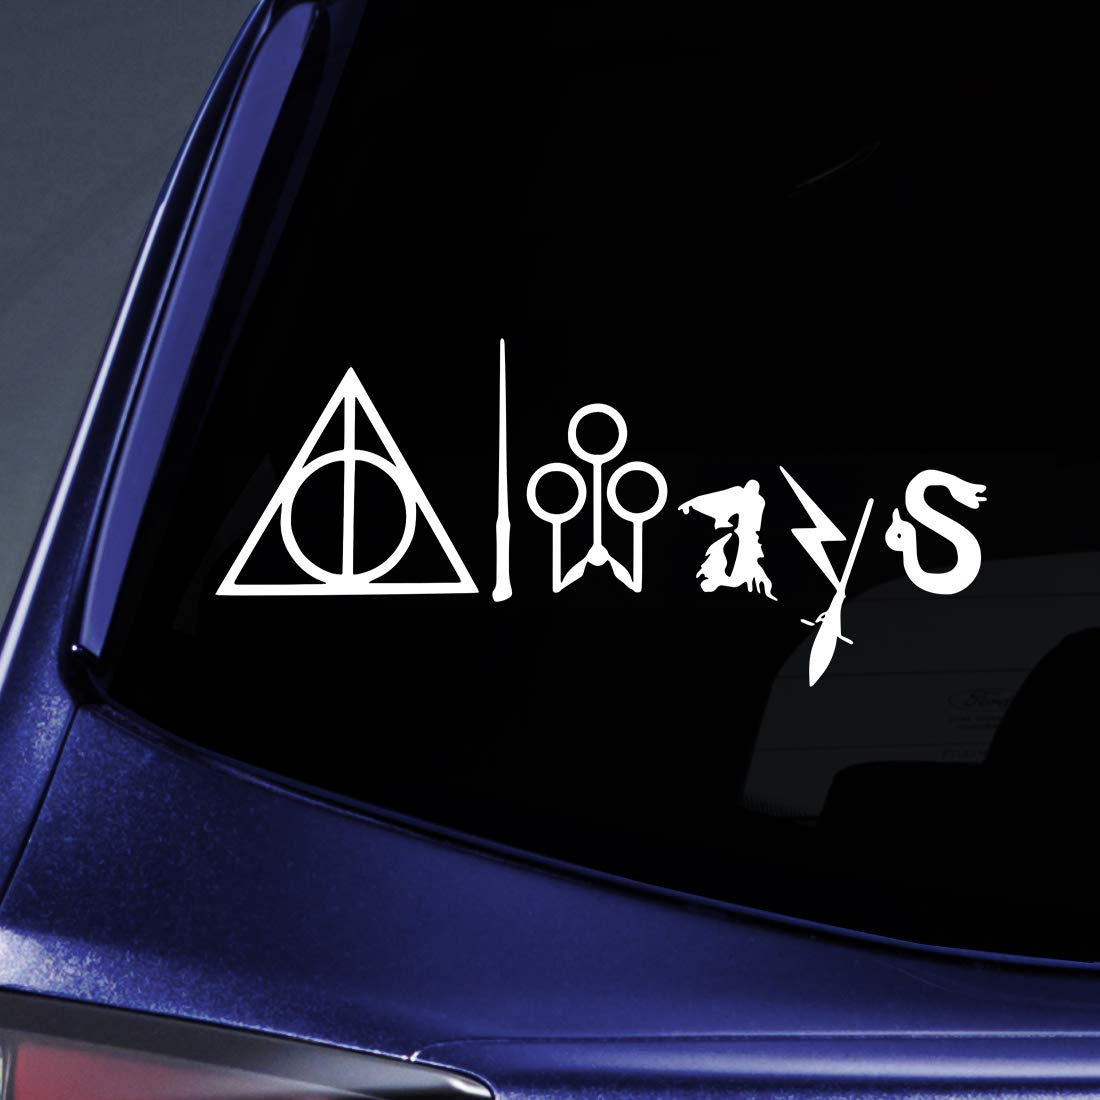 CMI187 Always Harry Potter WHITE Vinyl Car//Laptop//Window//Wall Decal 8.75 x 4.5 Bargain Max Decals